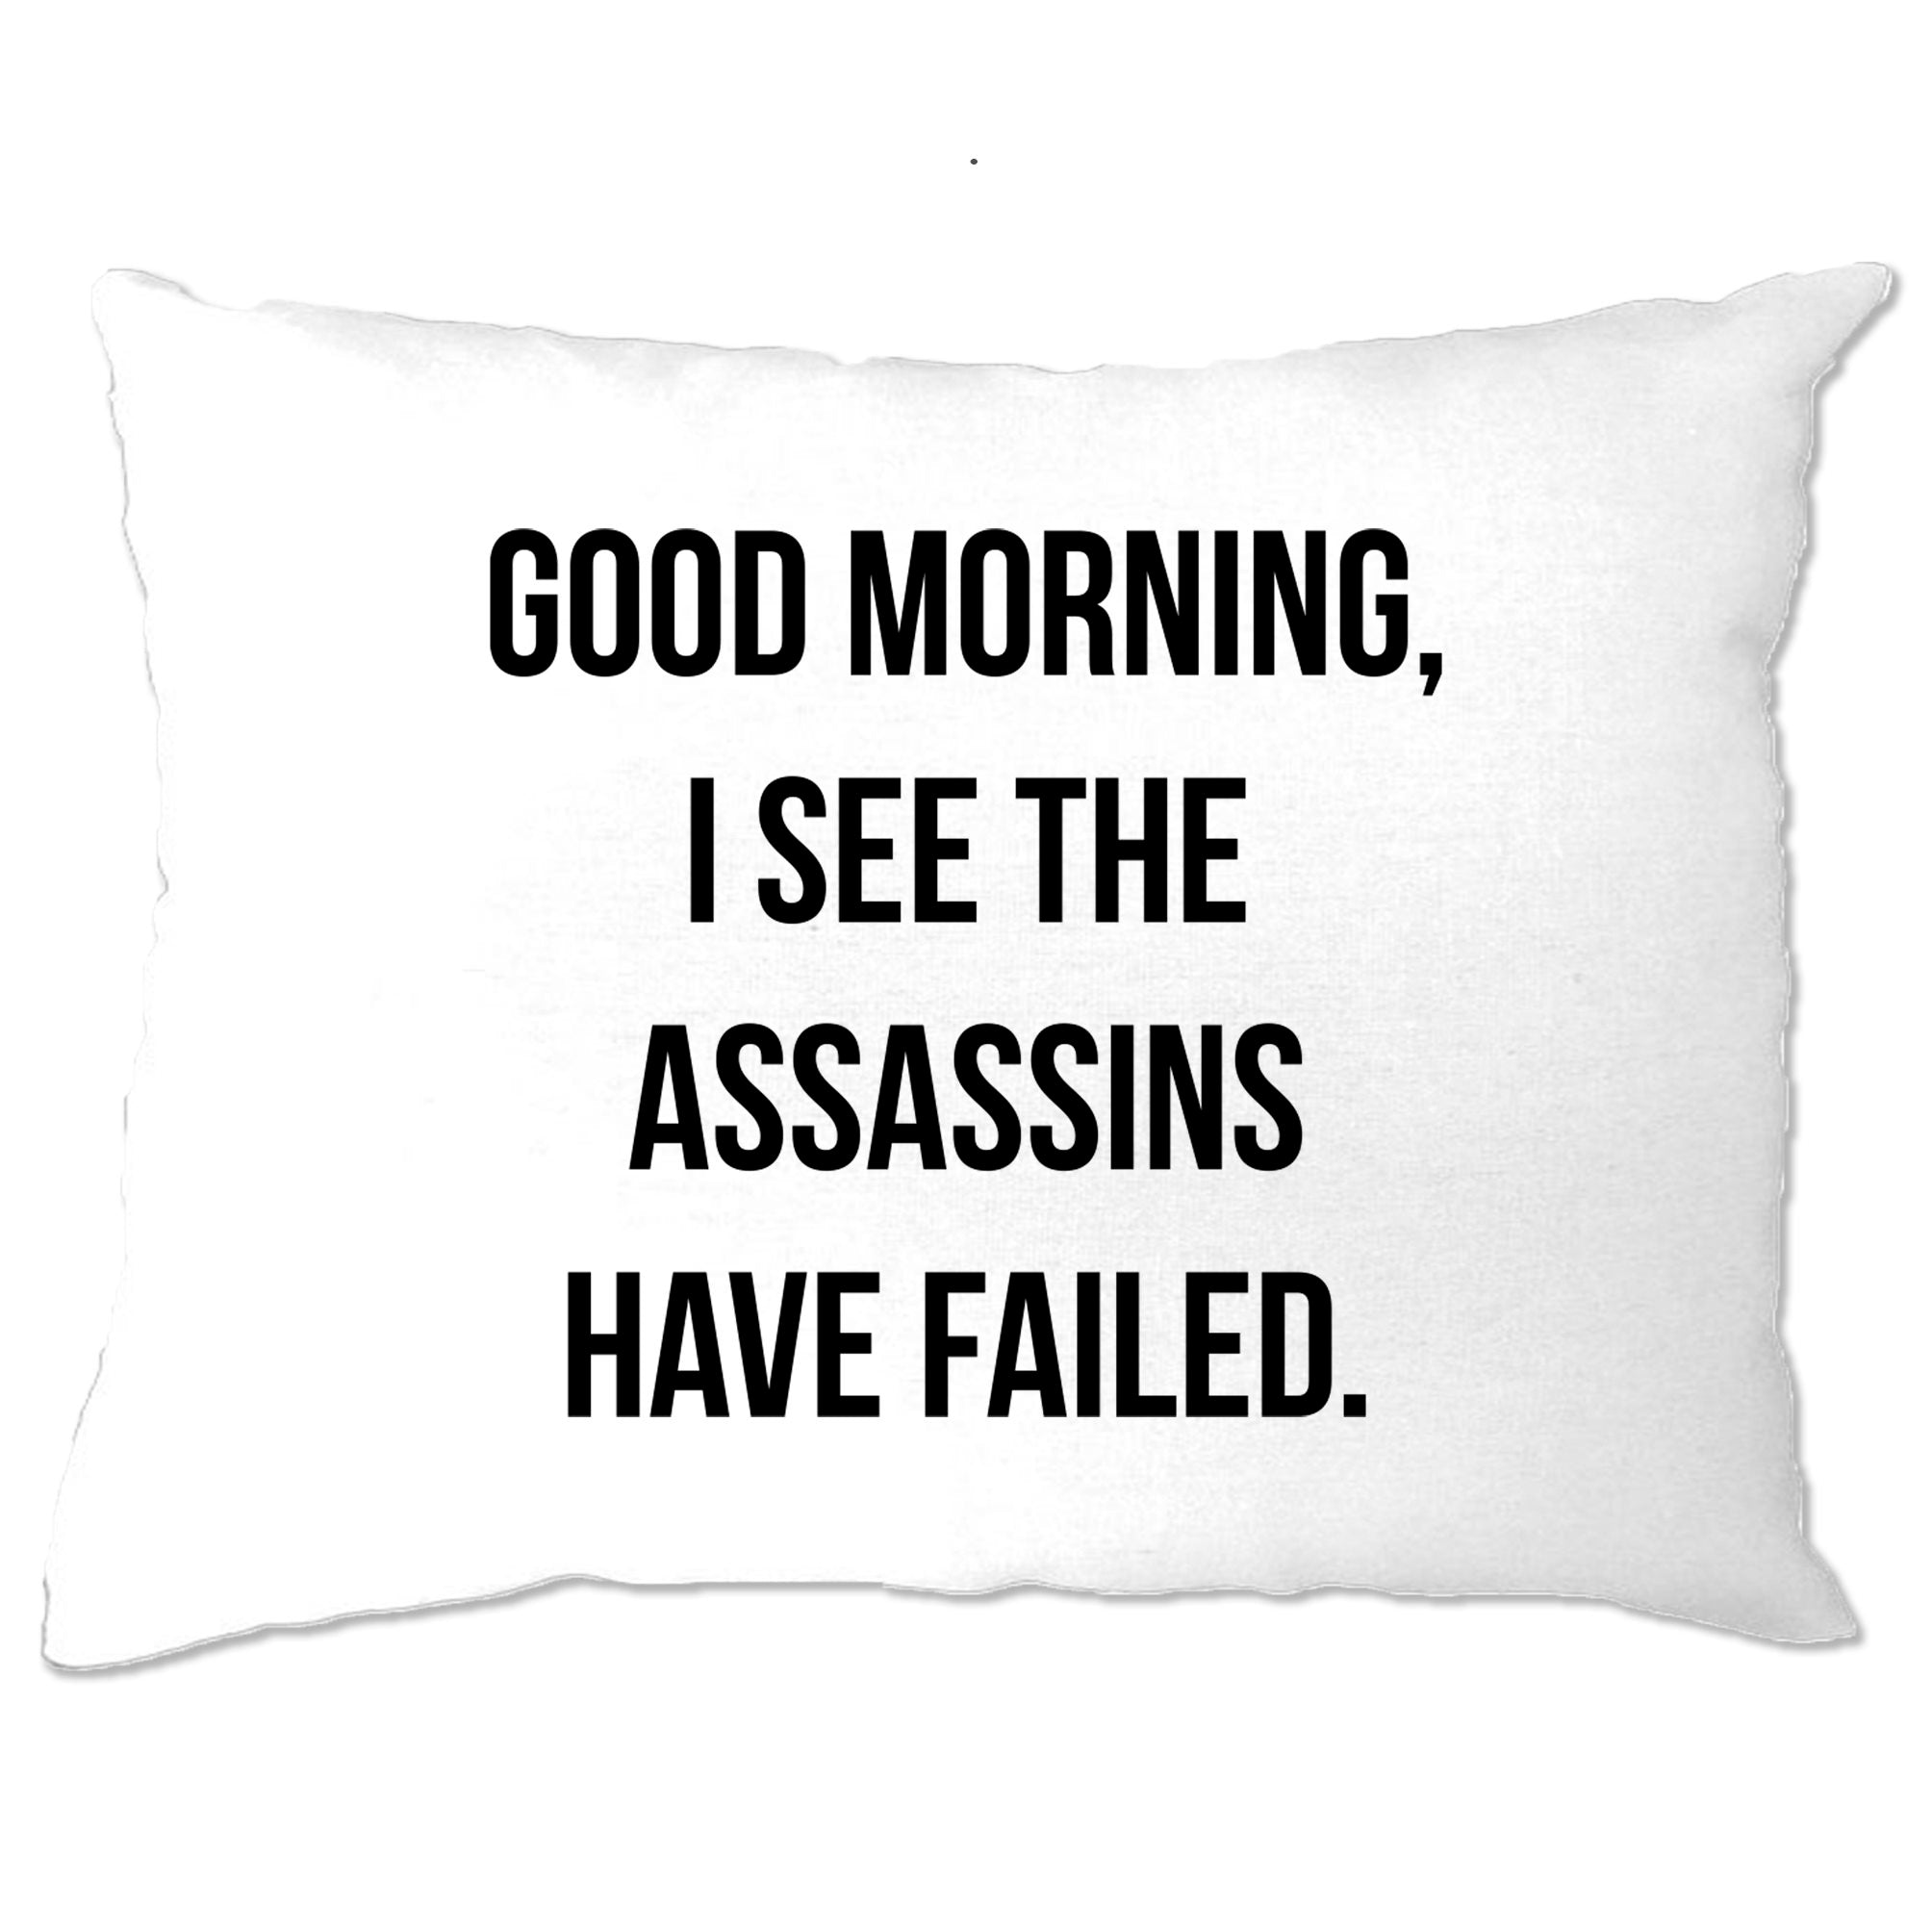 Novelty Pillow Case I See The Assassins Have Failed Joke